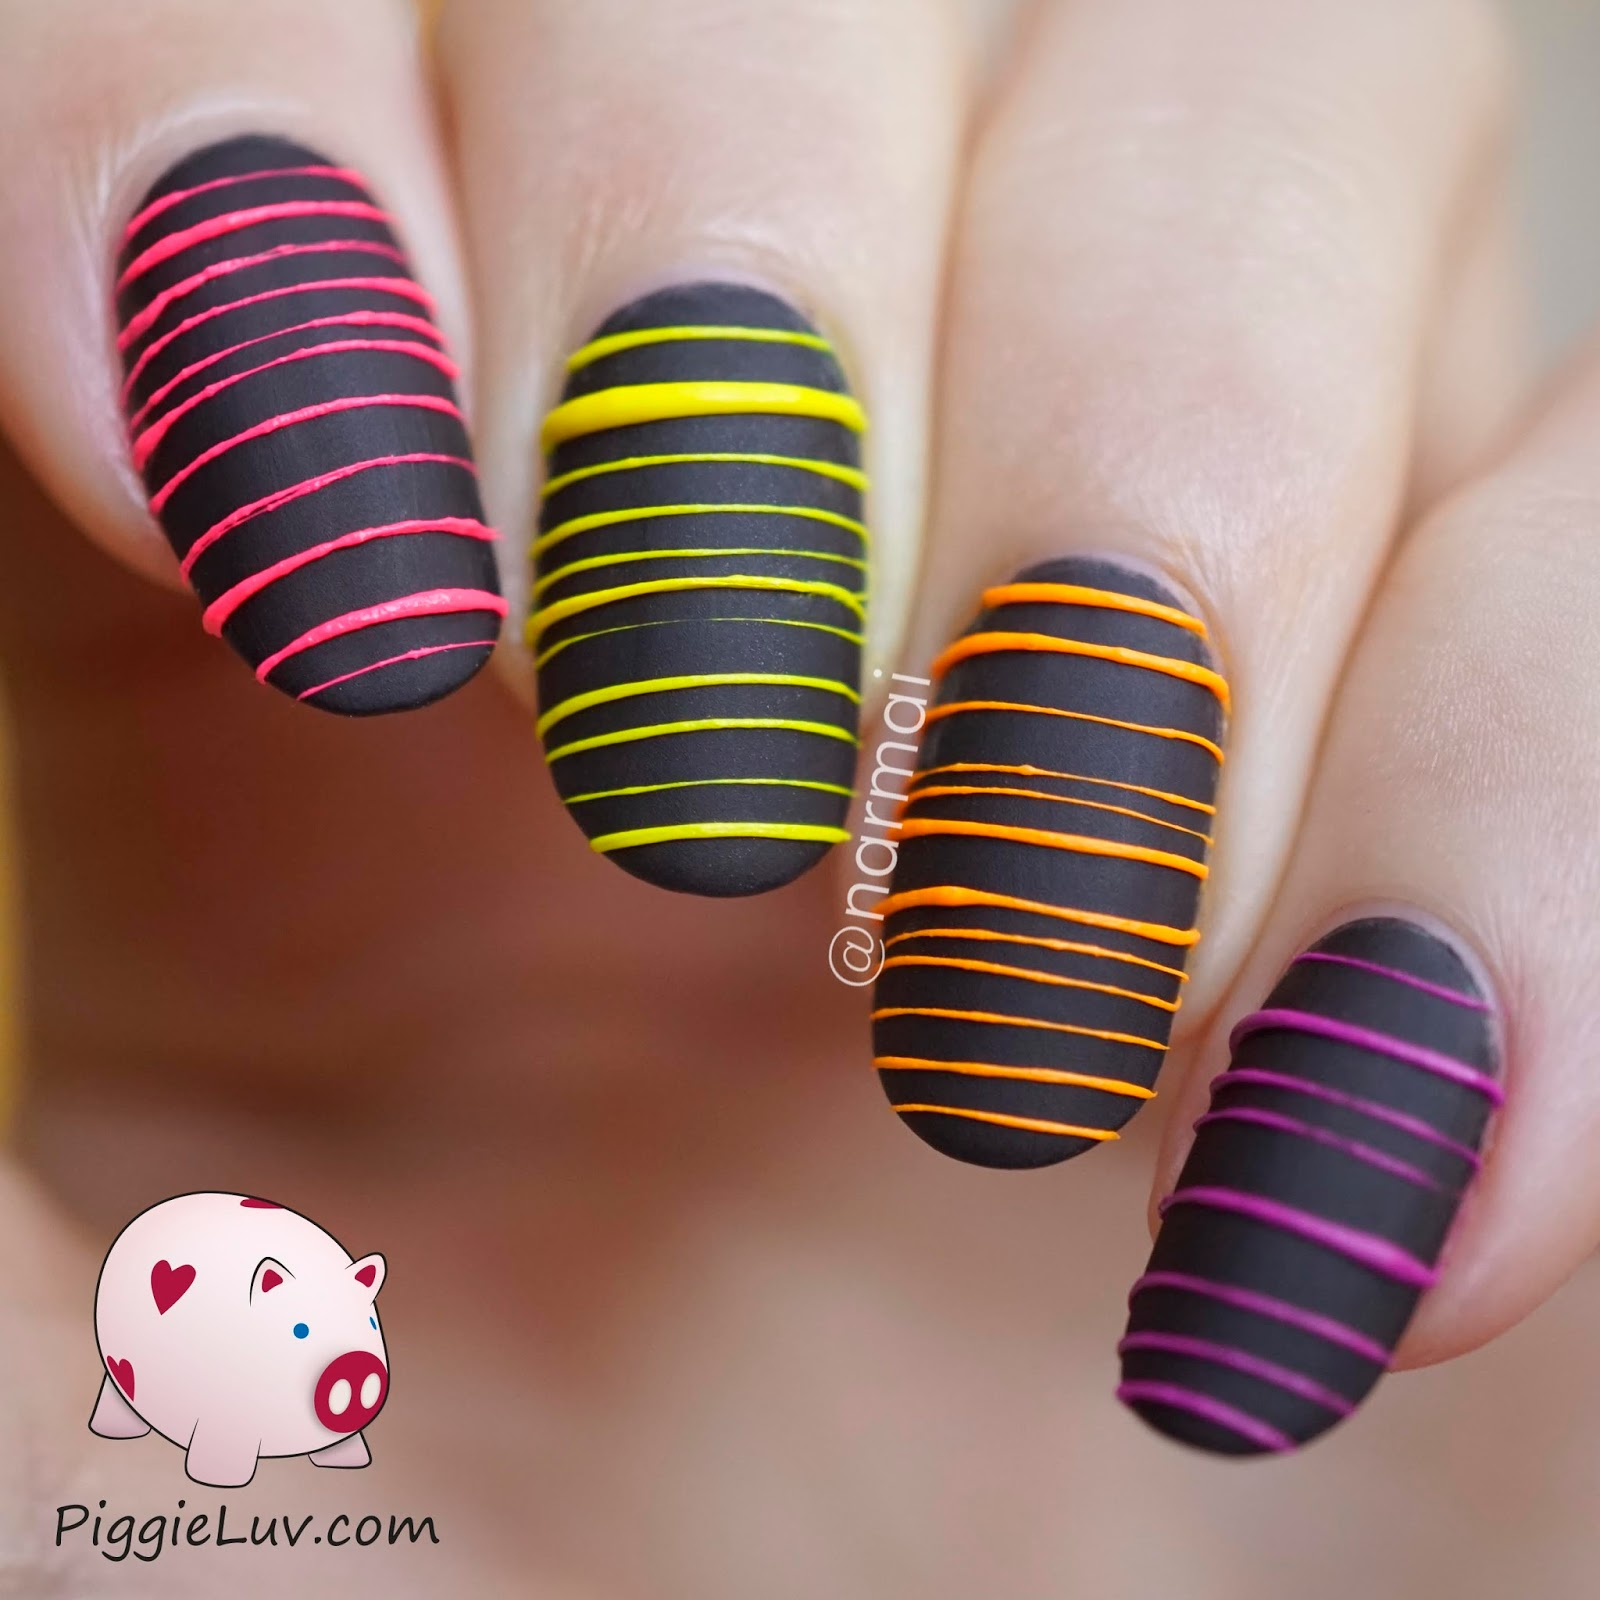 Piggieluv glow in the dark sugar spun nail art video tutorial glow in the dark sugar spun nail art video tutorial prinsesfo Images